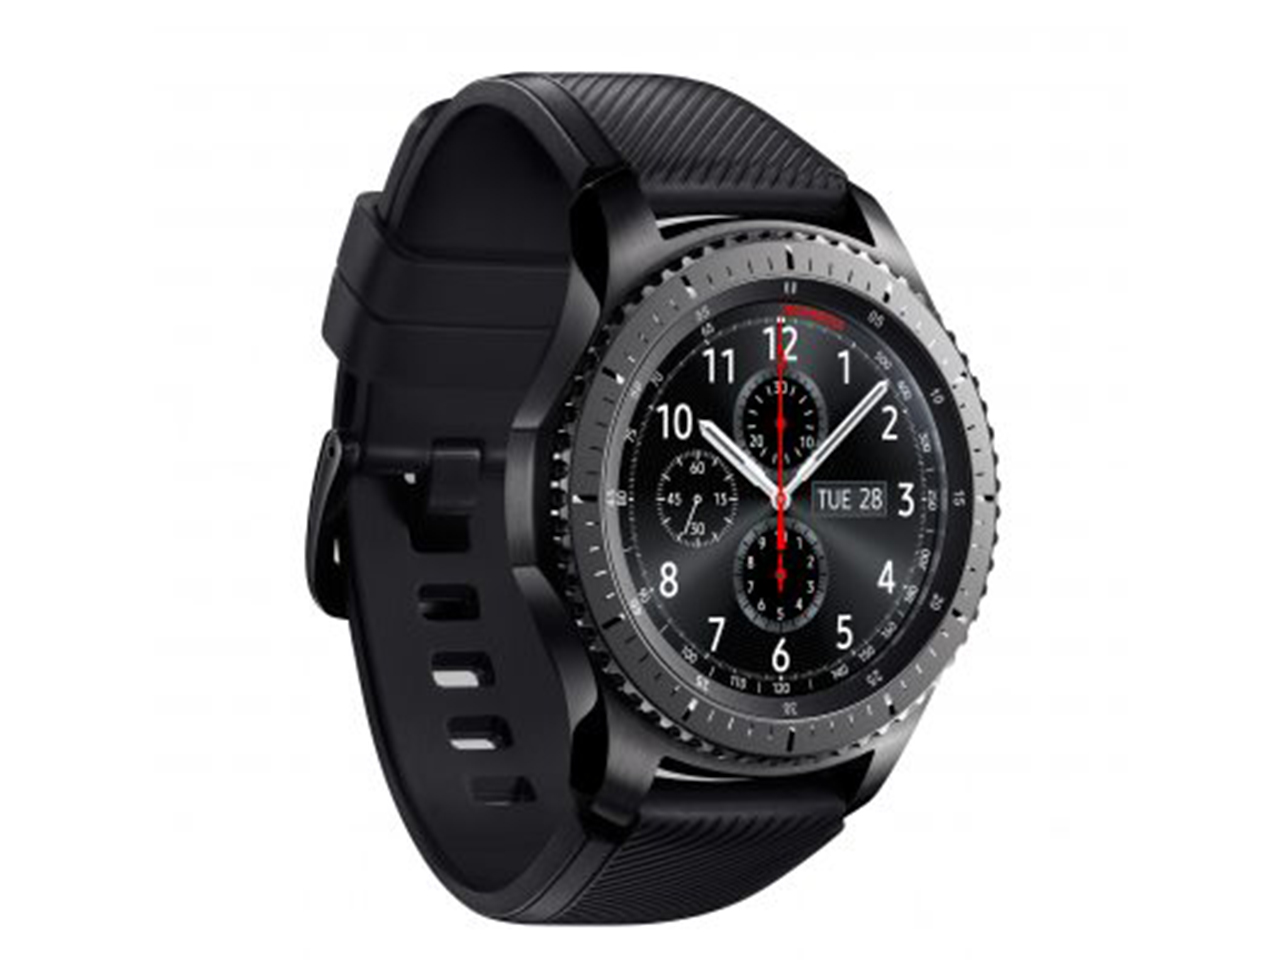 watch android alibaba rugged showroom manufacturers and com suppliers at phone rug smart waterproof smartwatch newest